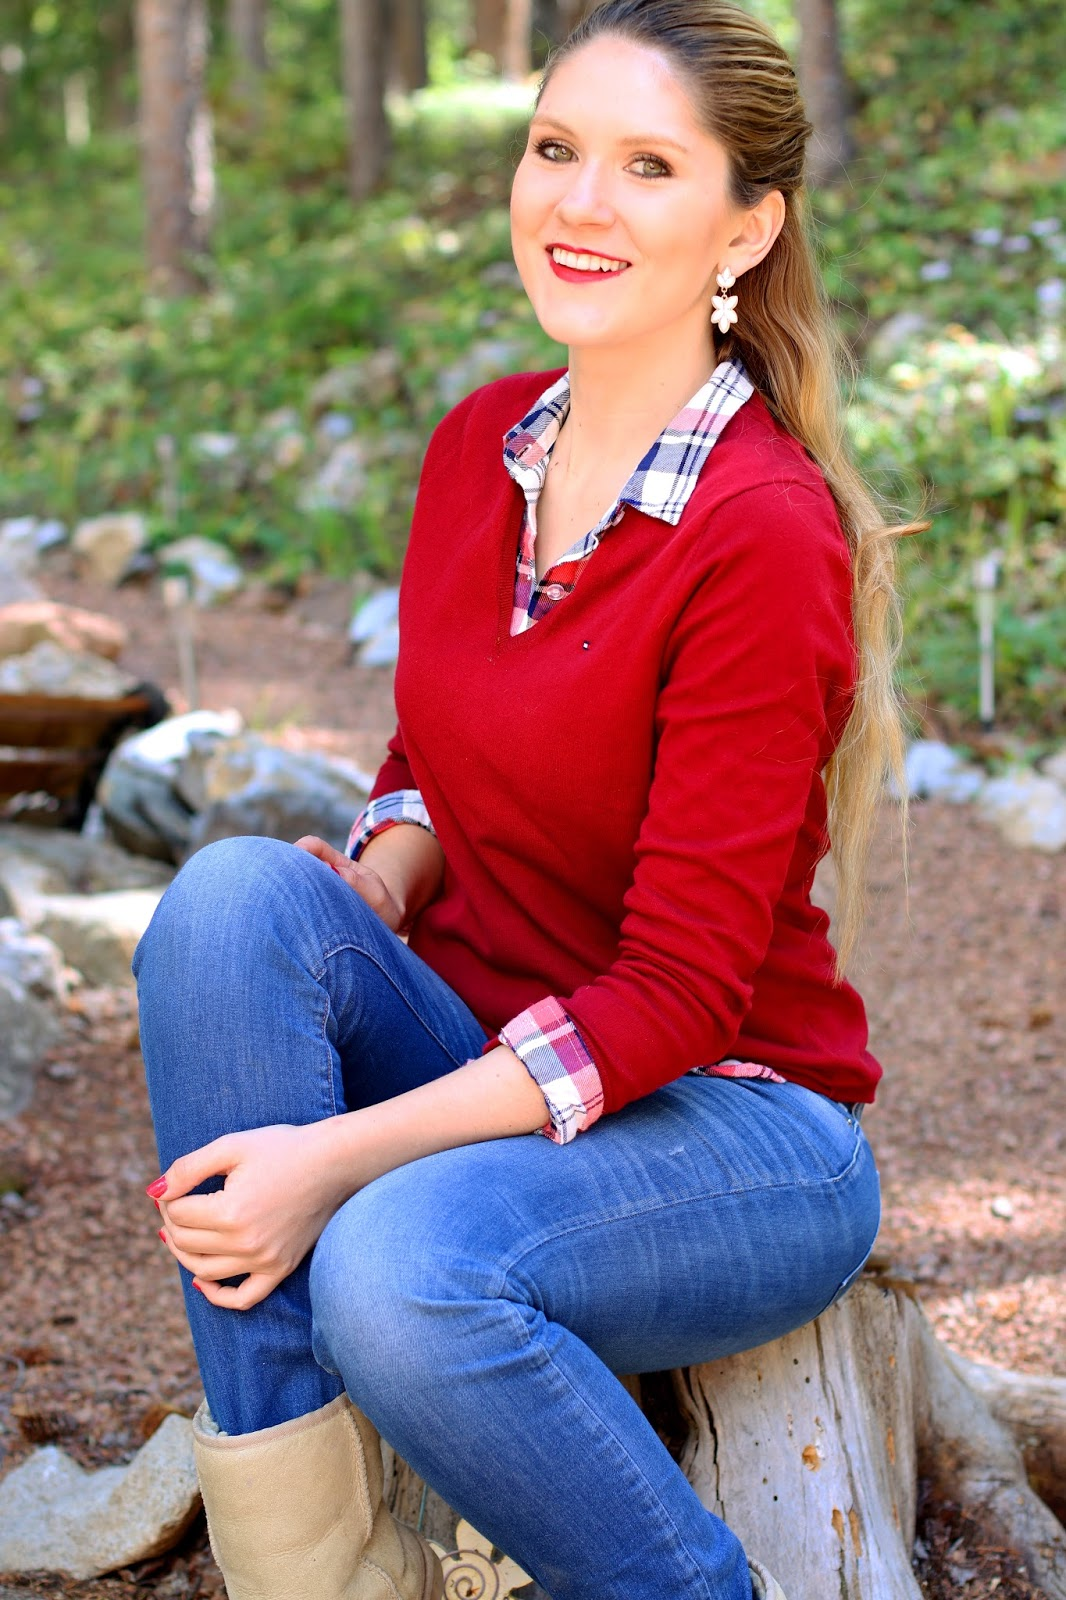 Layer plaid shirts under simple v-neck sweaters for a cute fall Outfit!